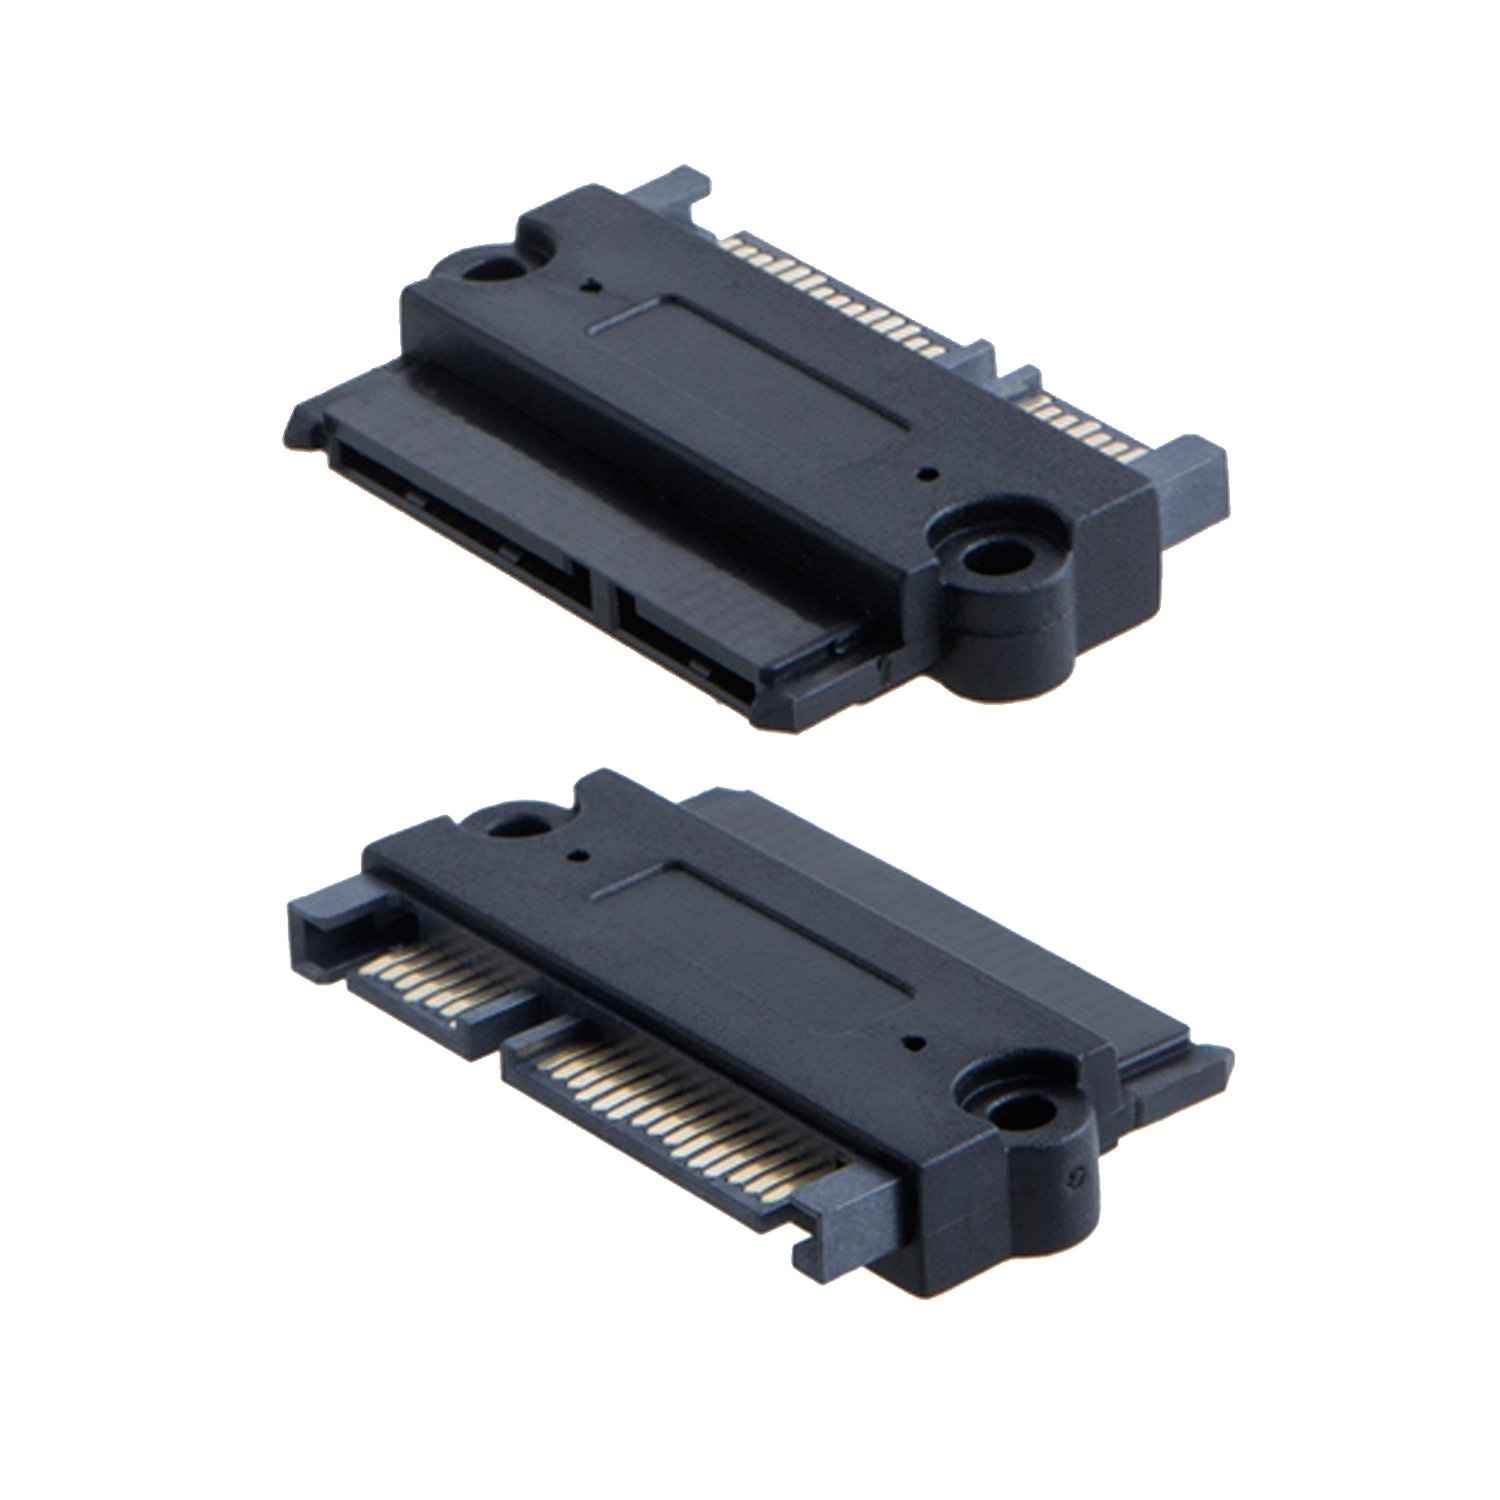 Hot sale Sff-8088 To Sff-8087 Cable - 2-Pack Sata Male-Female Adapter, #CD0237-2 – CableCreation